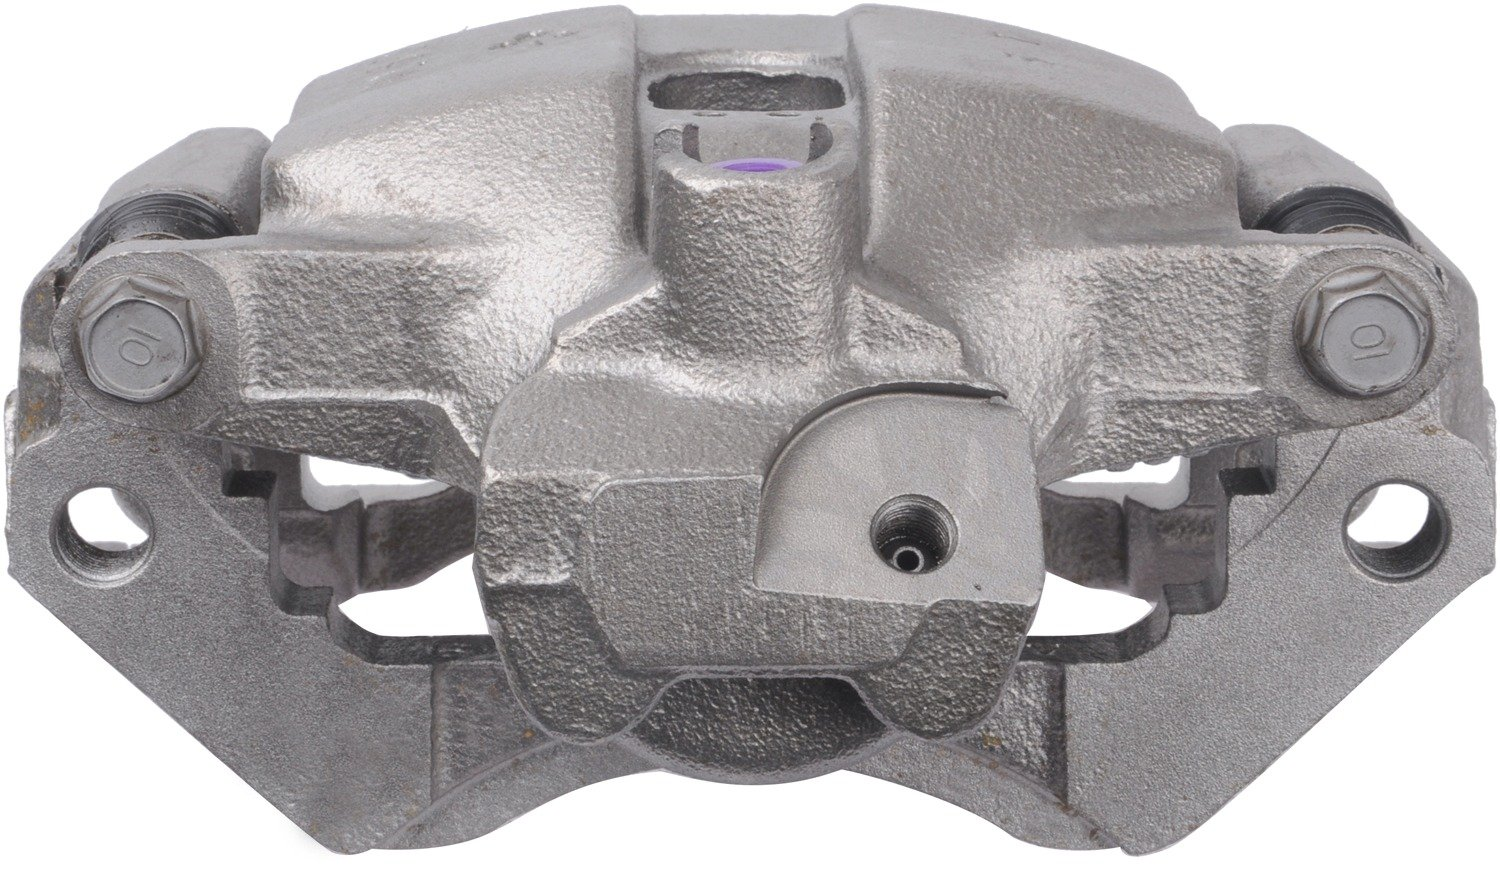 Cardone 18-B8027 Remanufactured Domestic Friction Ready (Unloaded) Brake Caliper by Cardone